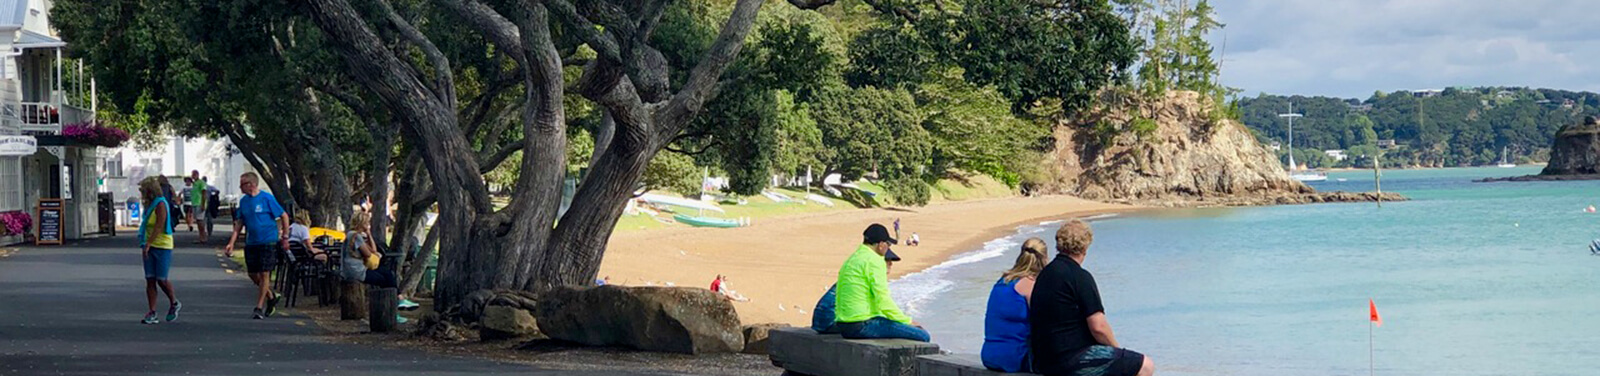 Looking at the main beach in Russell, Bay of Islands